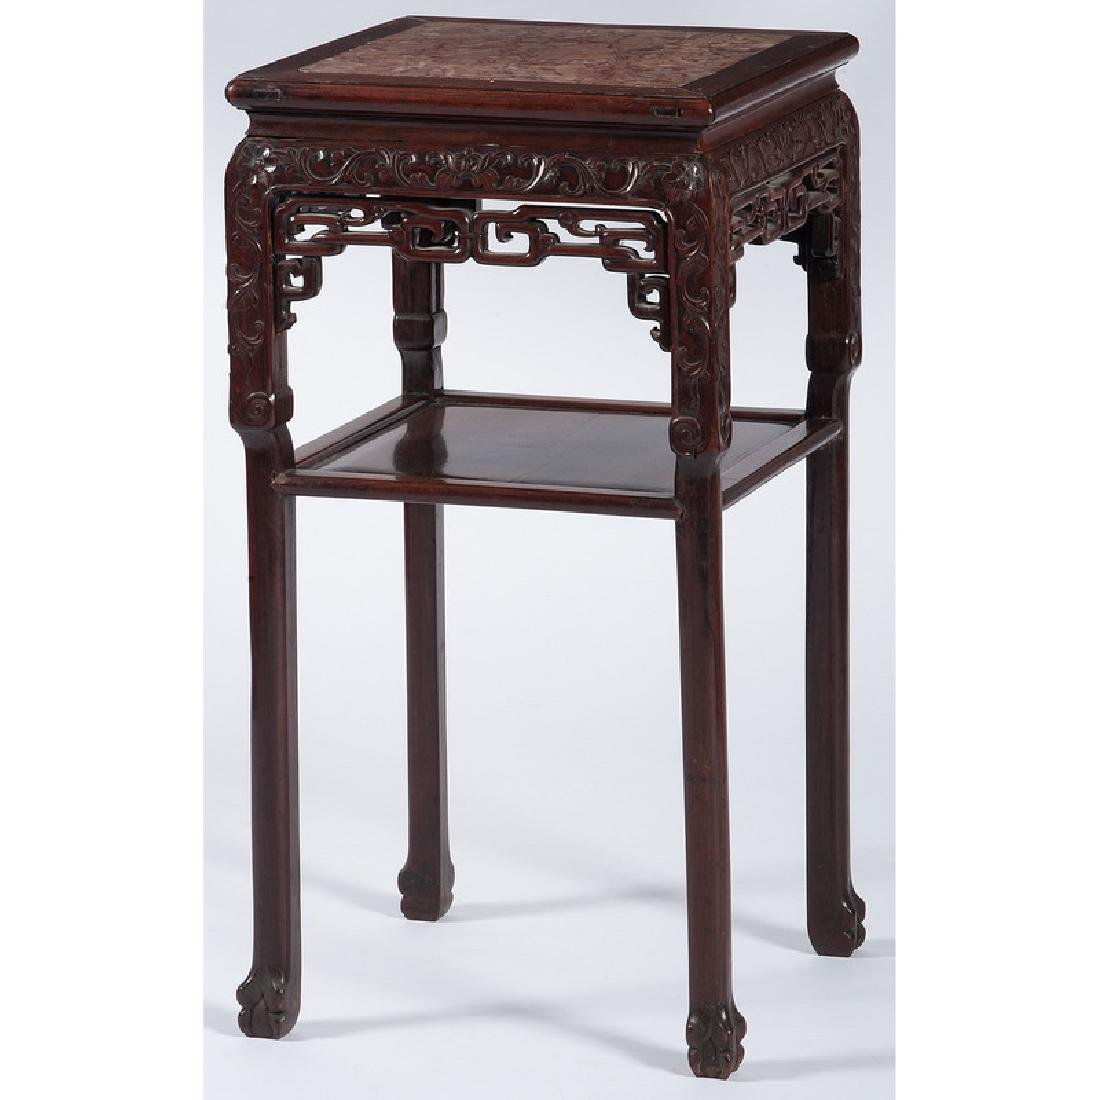 Chinese Carved Hardwood Tea Table with Marble Top